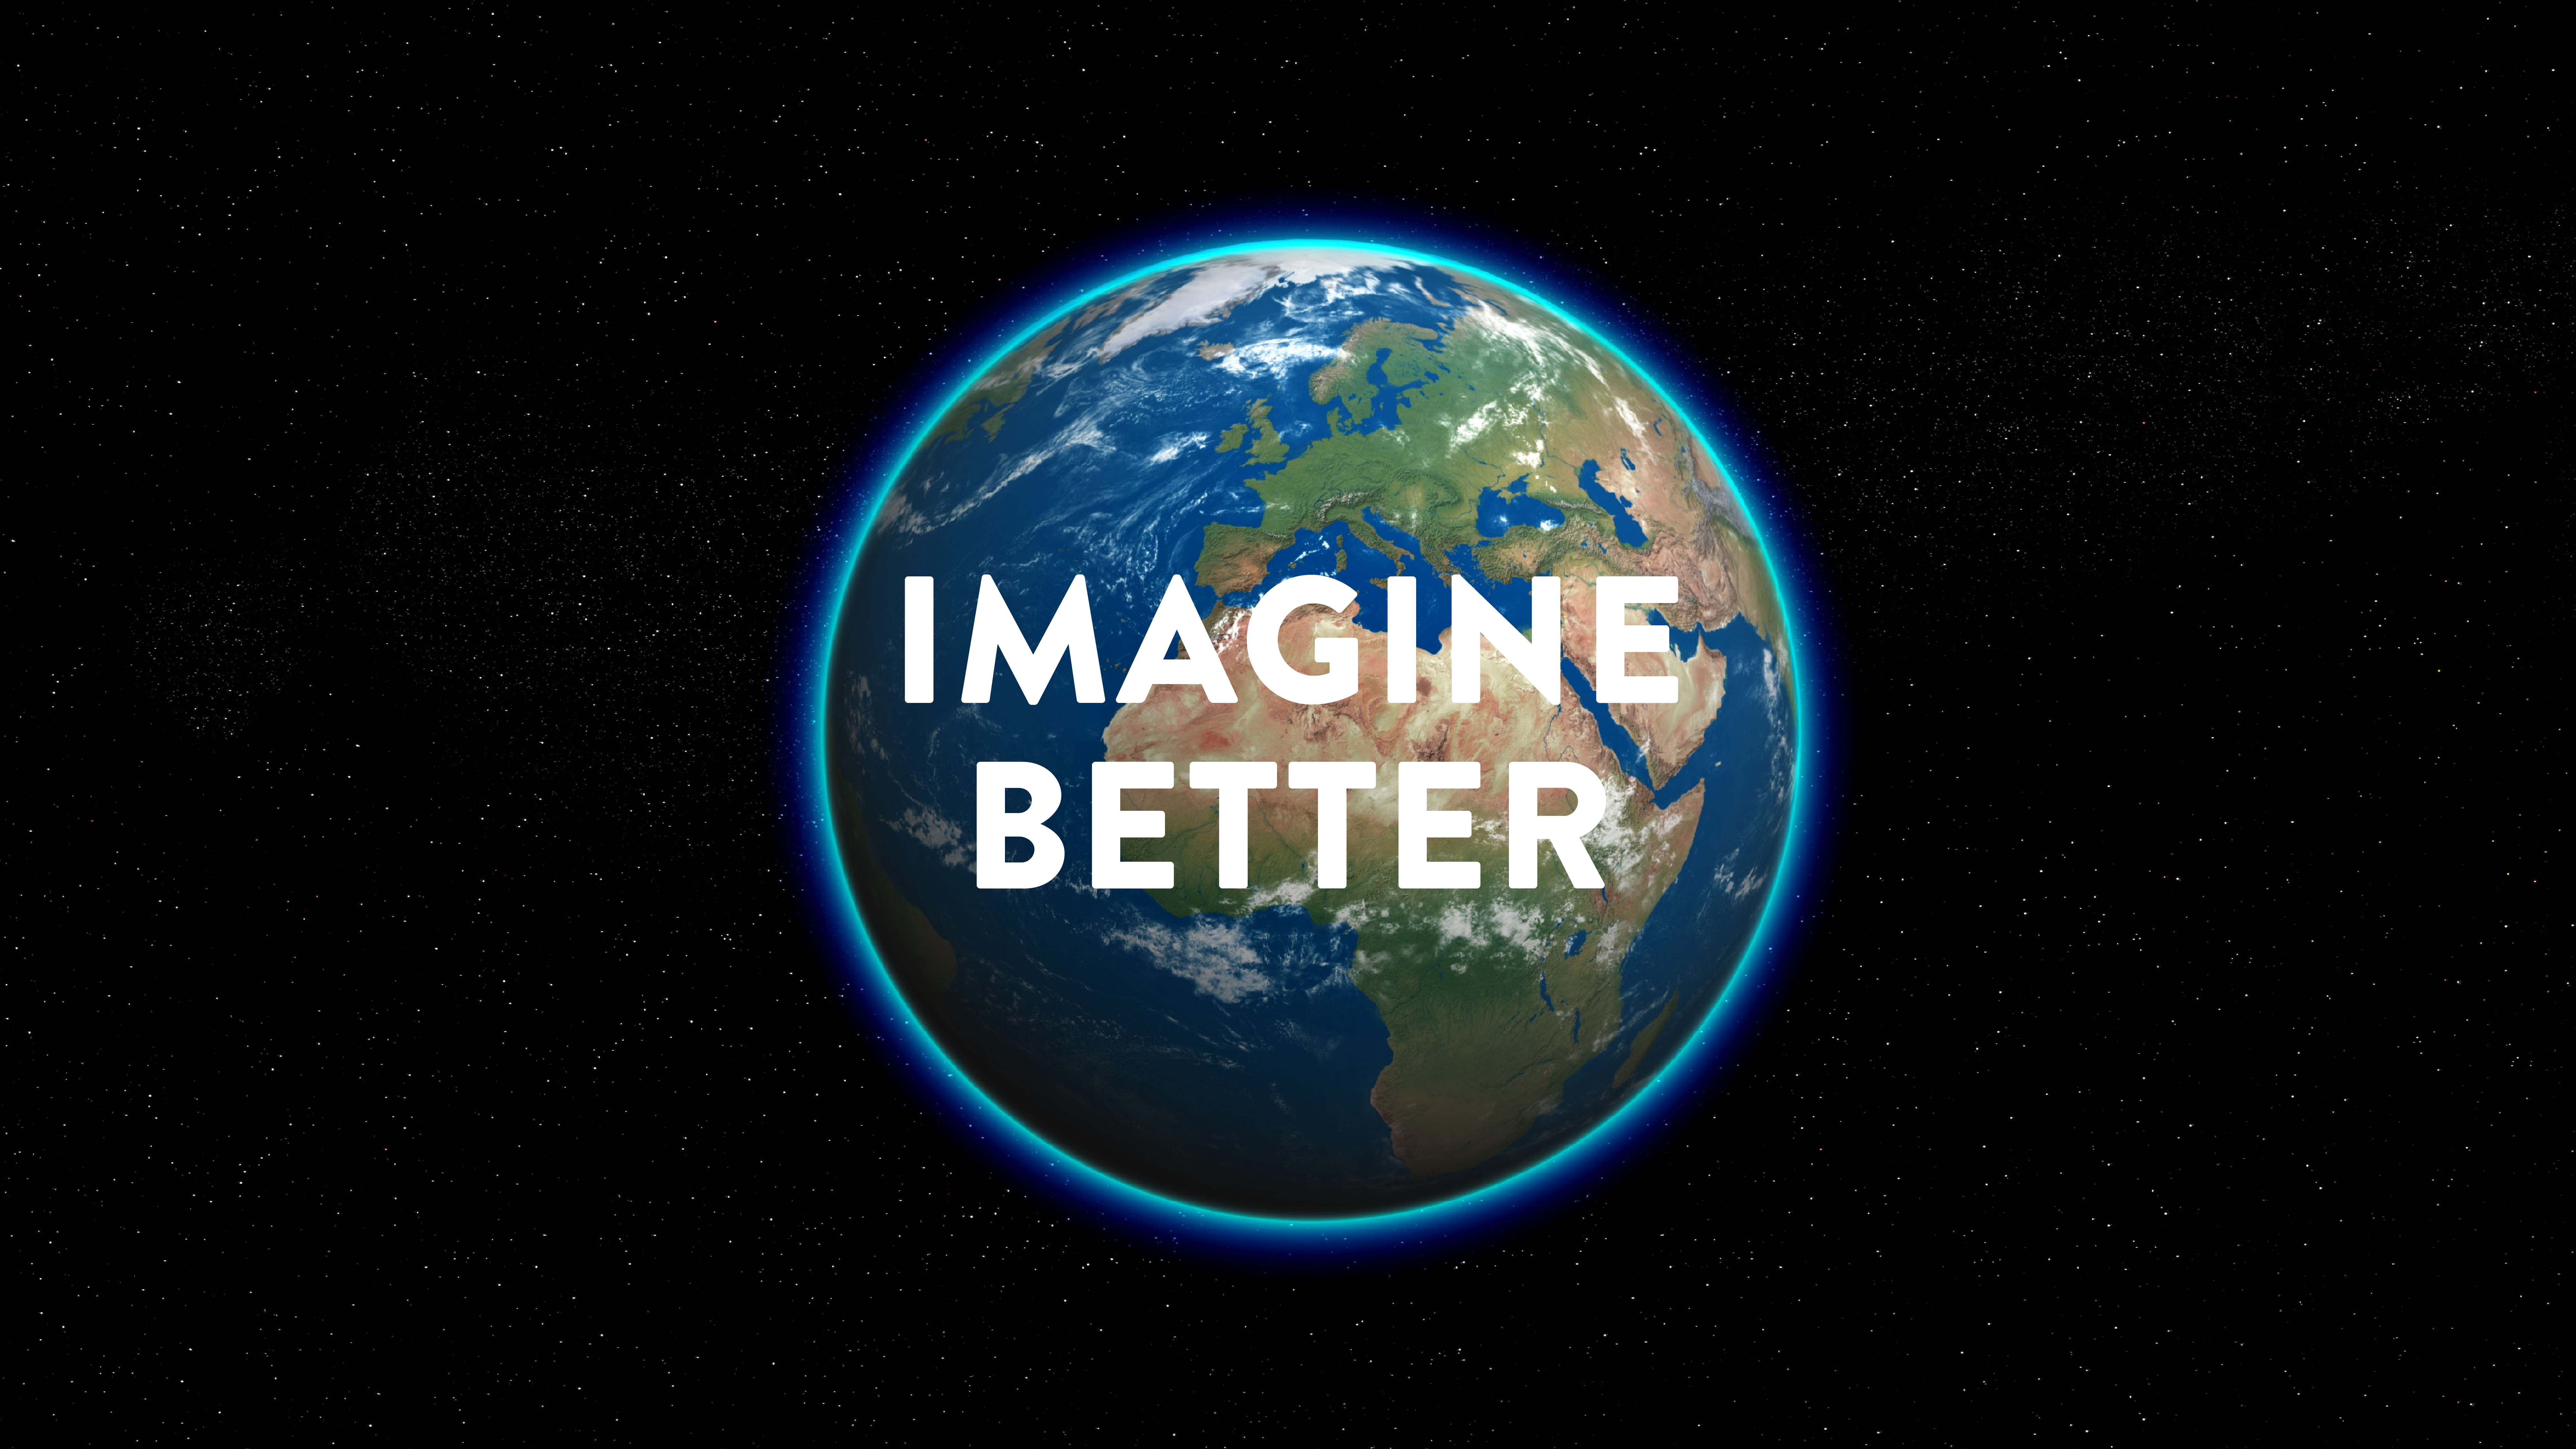 Imagining a World Where All Are Inspired to Live Sustainably